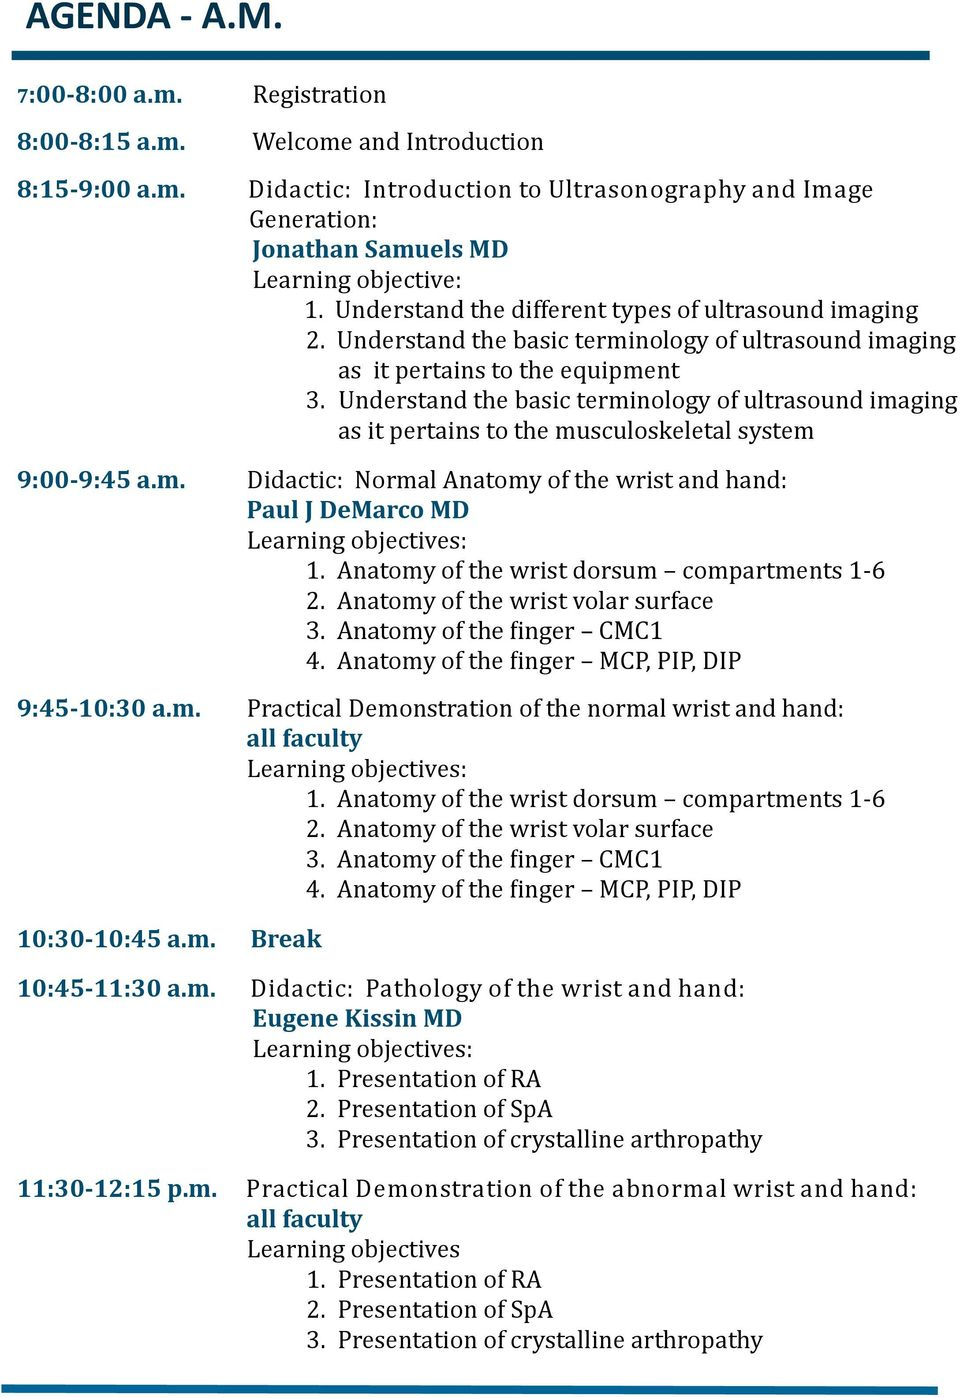 Understand the basic terminology of ultrasound imaging as it pertains to the musculoskeletal system 9:00-9:45 a.m. Didactic: Normal Anatomy of the wrist and hand: Paul J DeMarco MD 1.